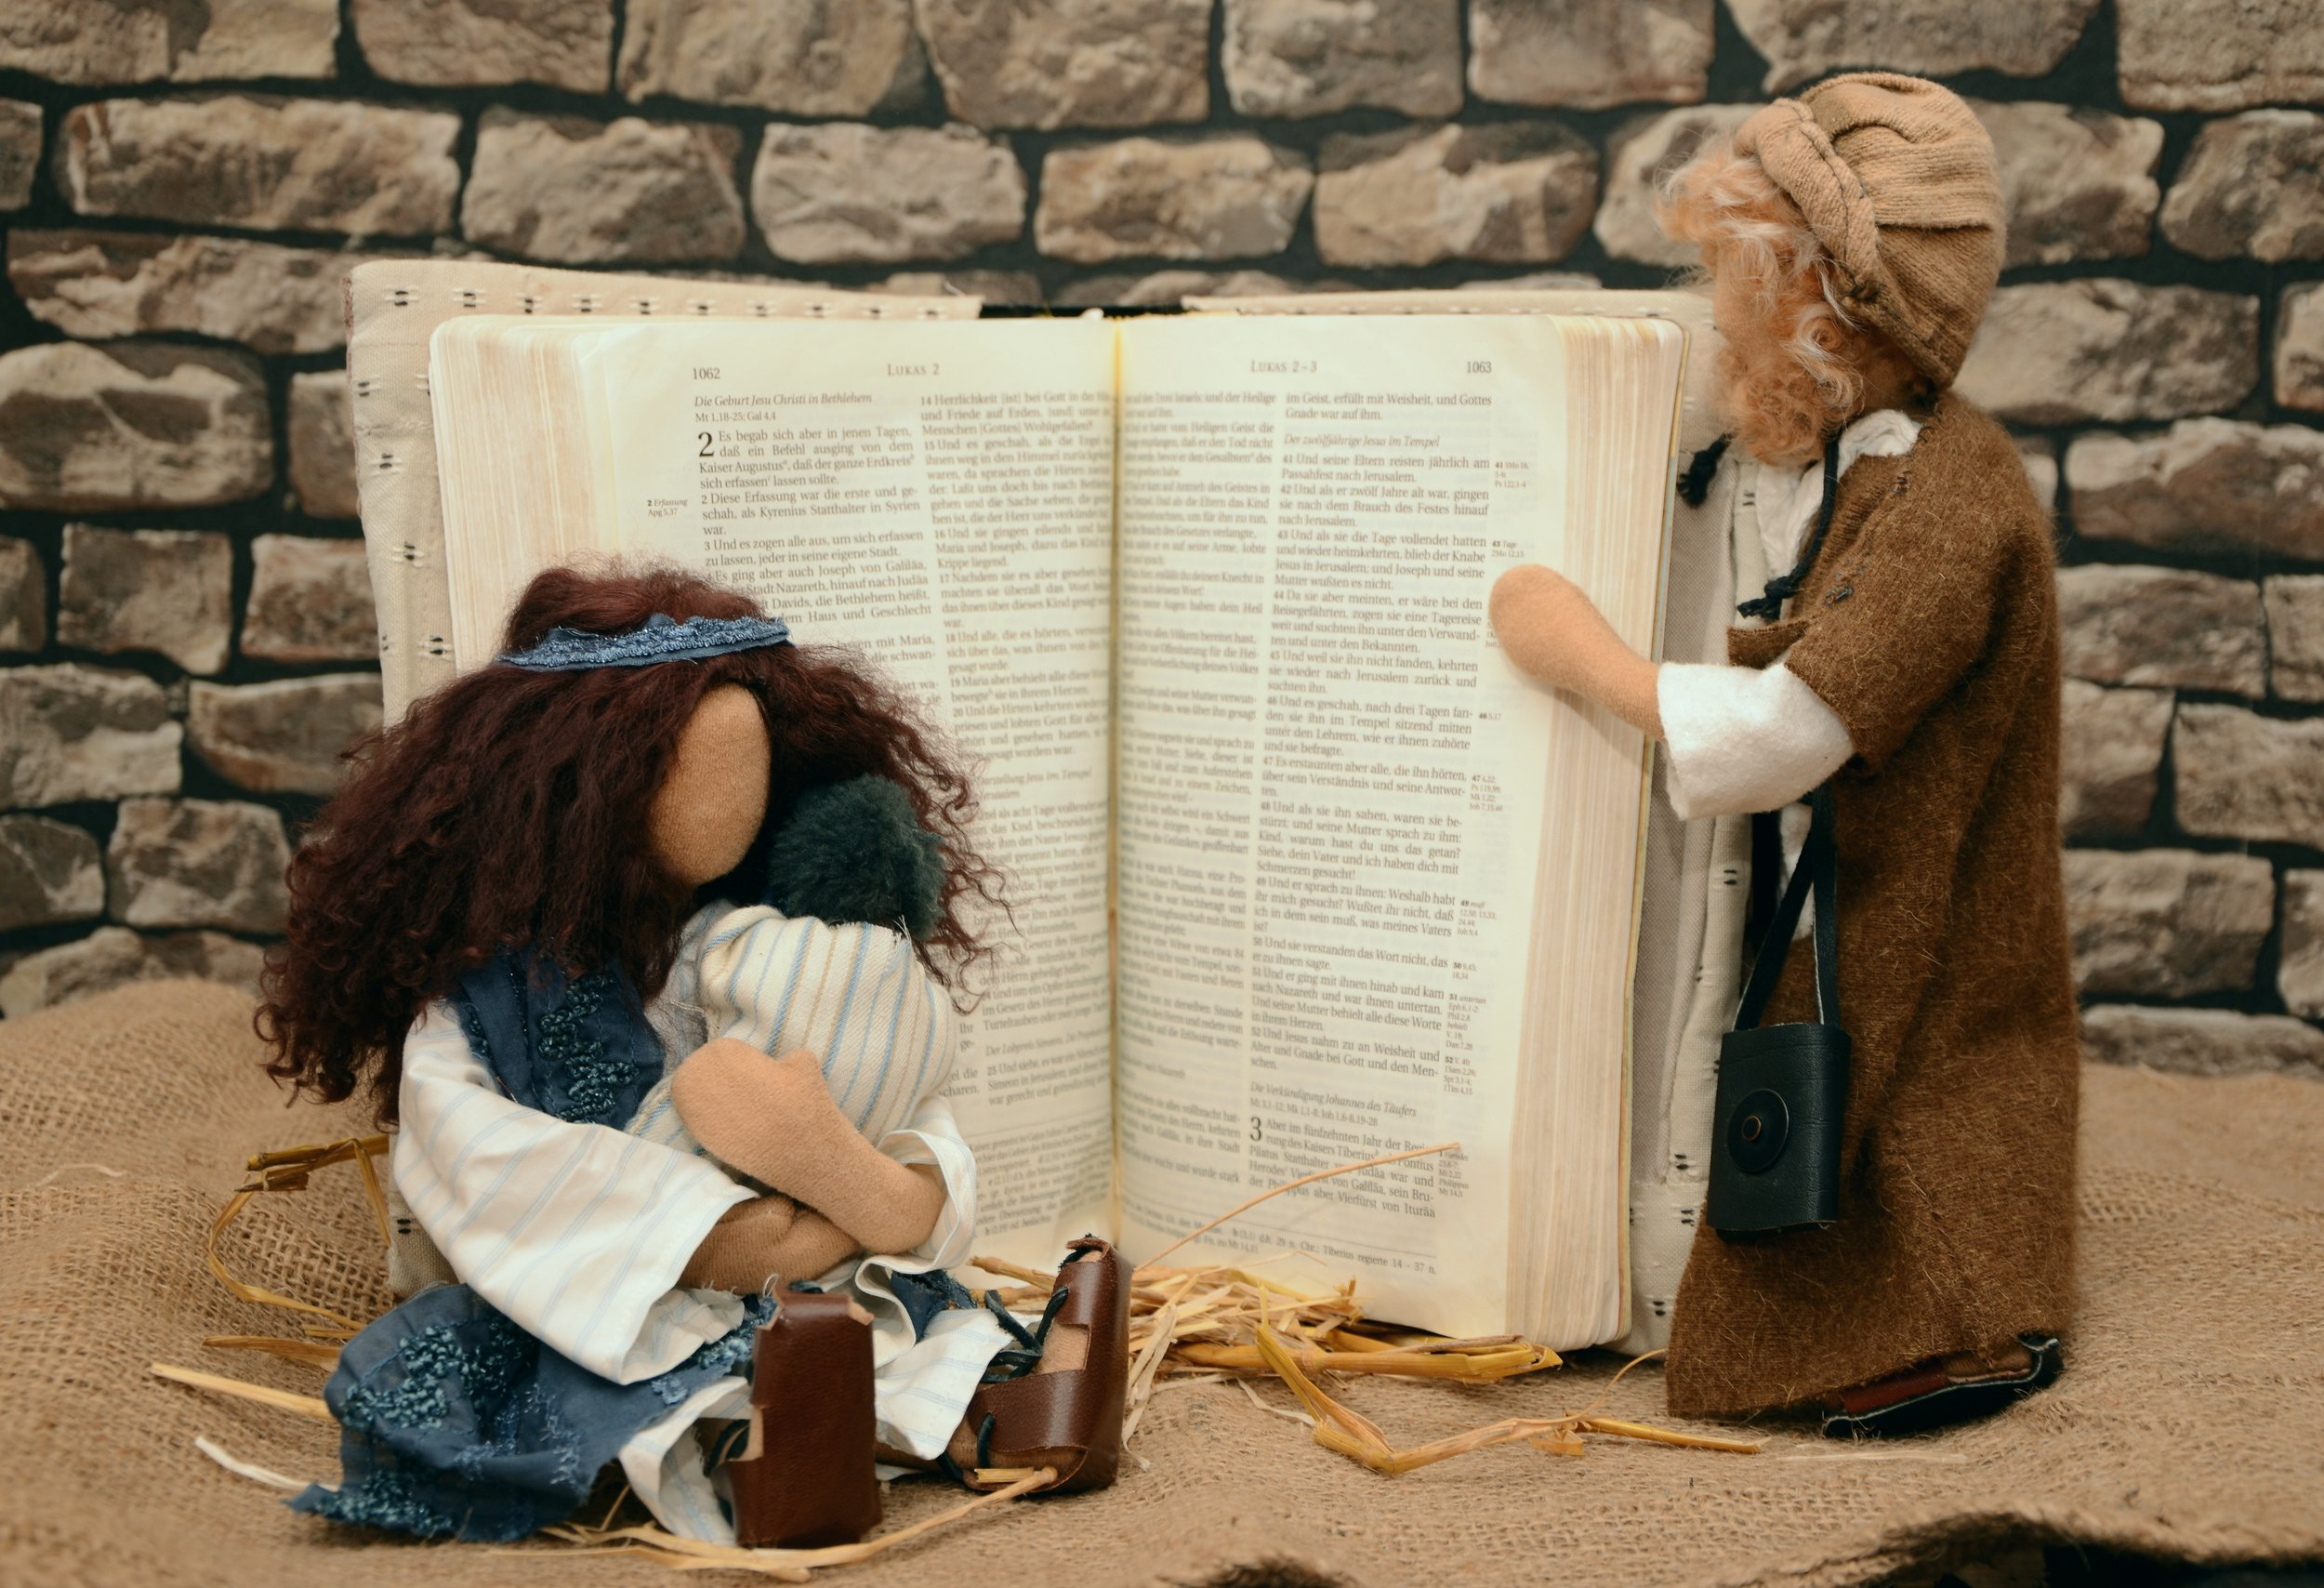 bible-book-child-236189.jpg